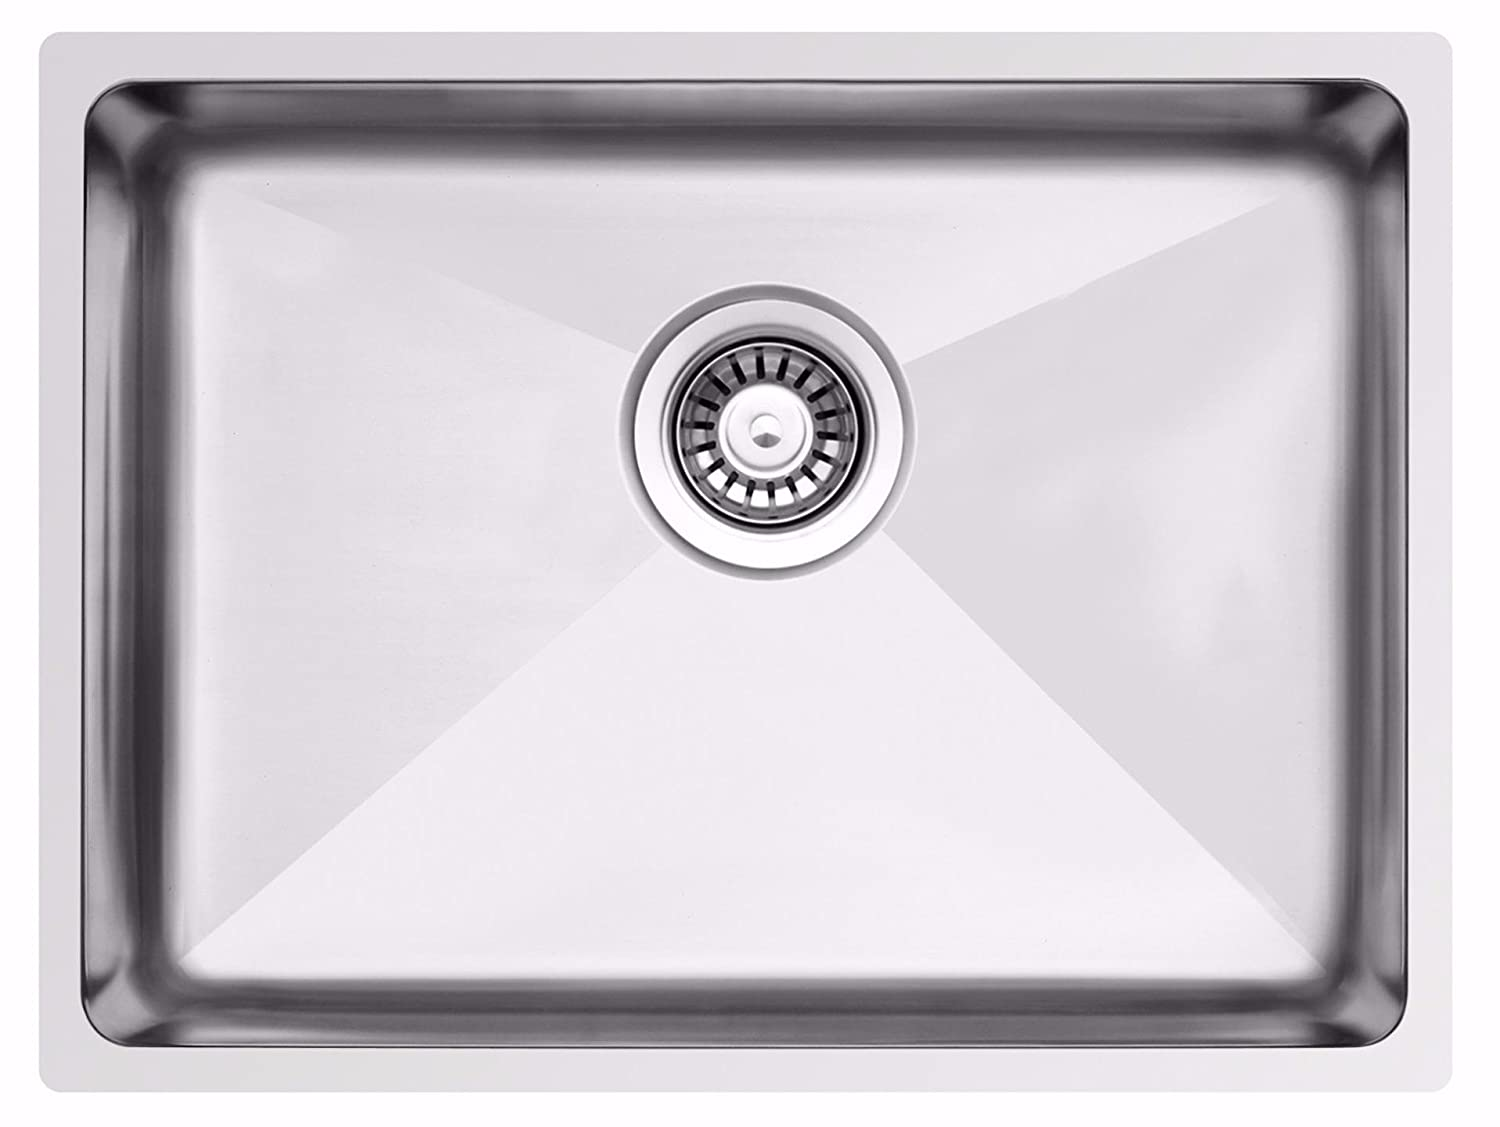 588 x 435 mm Undermount/Inset Deep Single Bowl Stainless Steel Kitchen Sink With Waste (LA018) Grand Taps